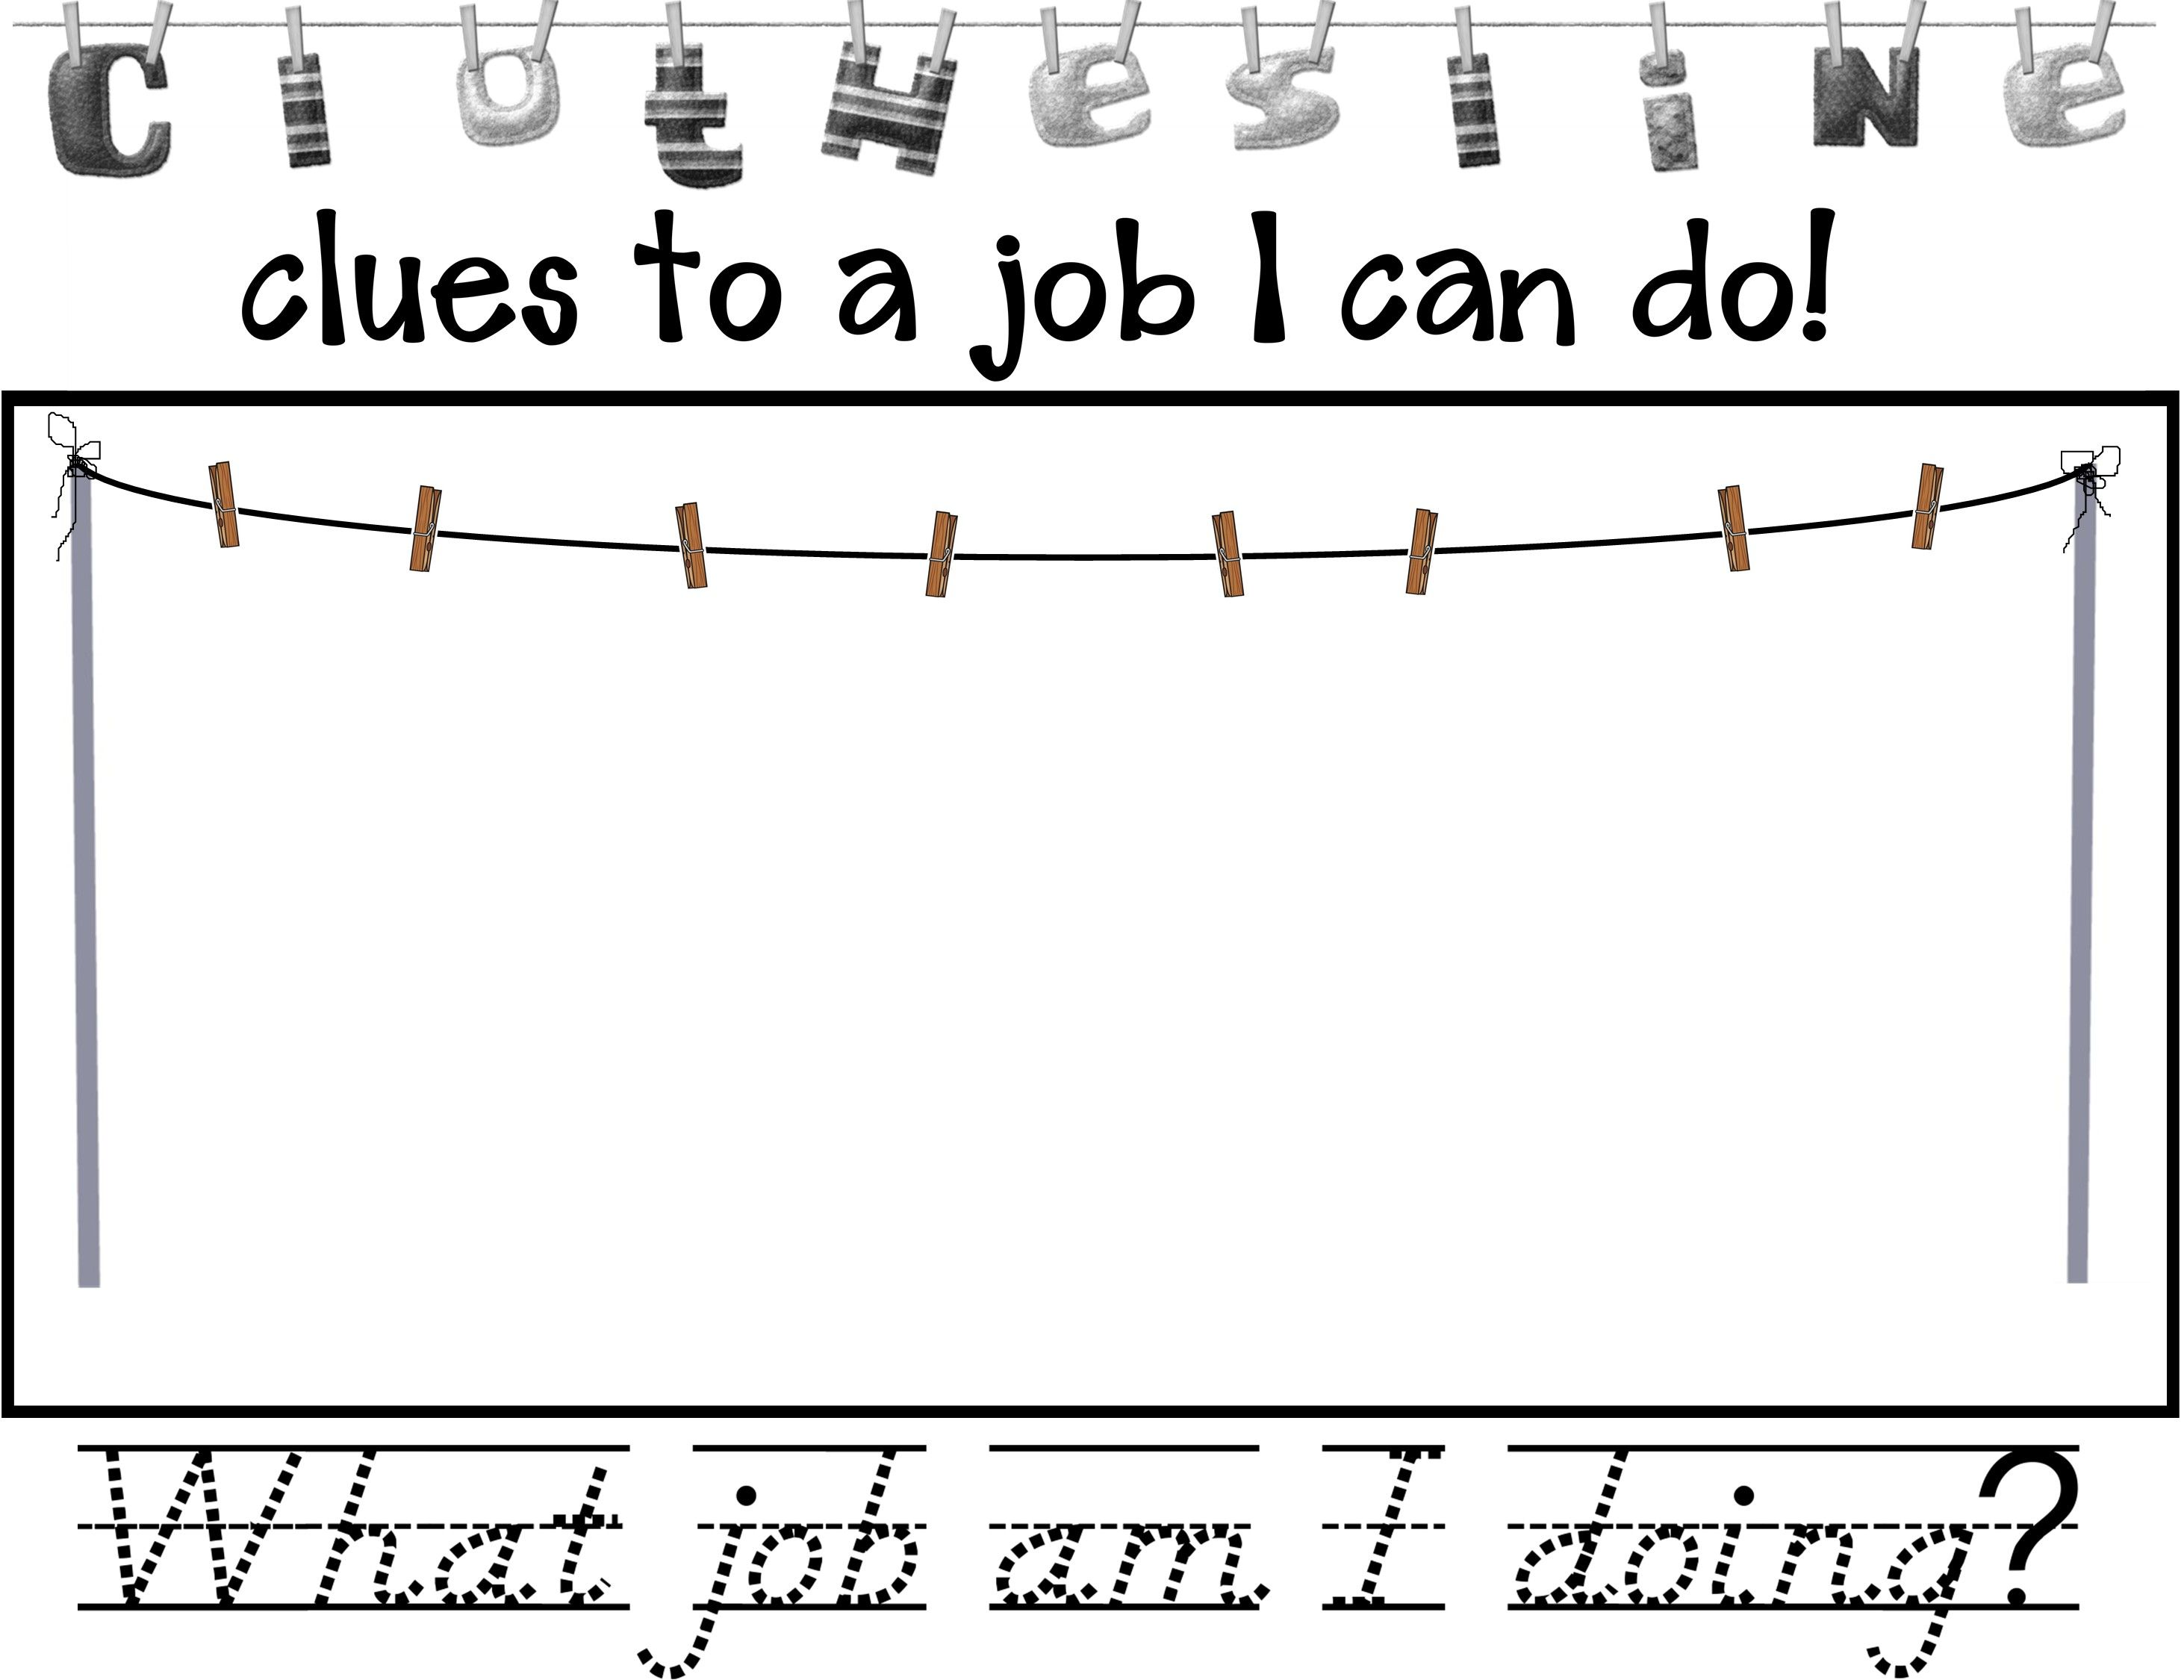 Worksheet To Go Along With Clothesline Clues To Jobs